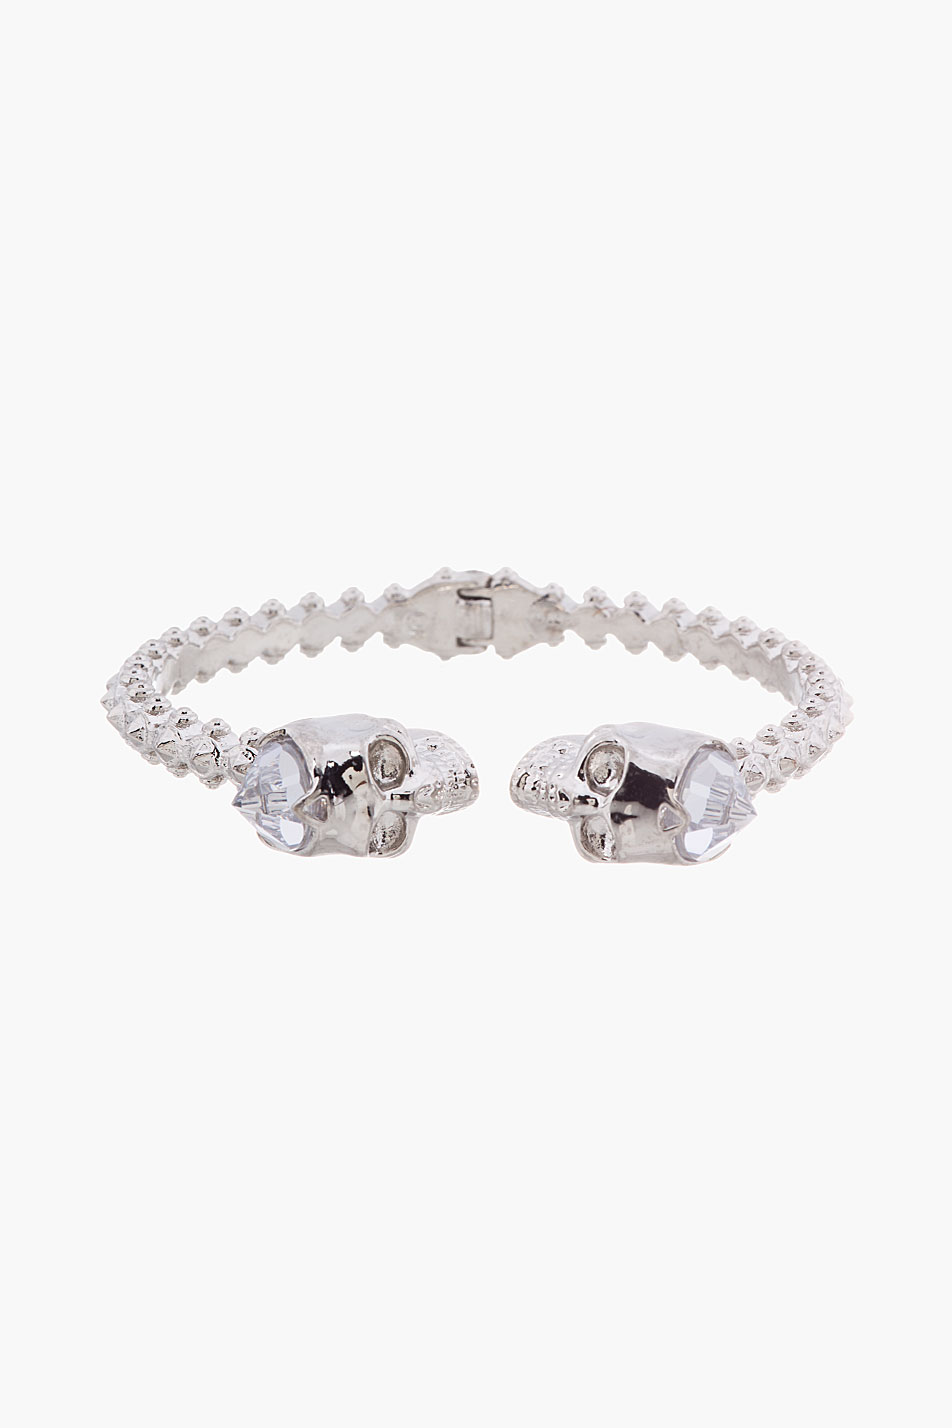 Alexander mcqueen silver stud and skull hinged bangle